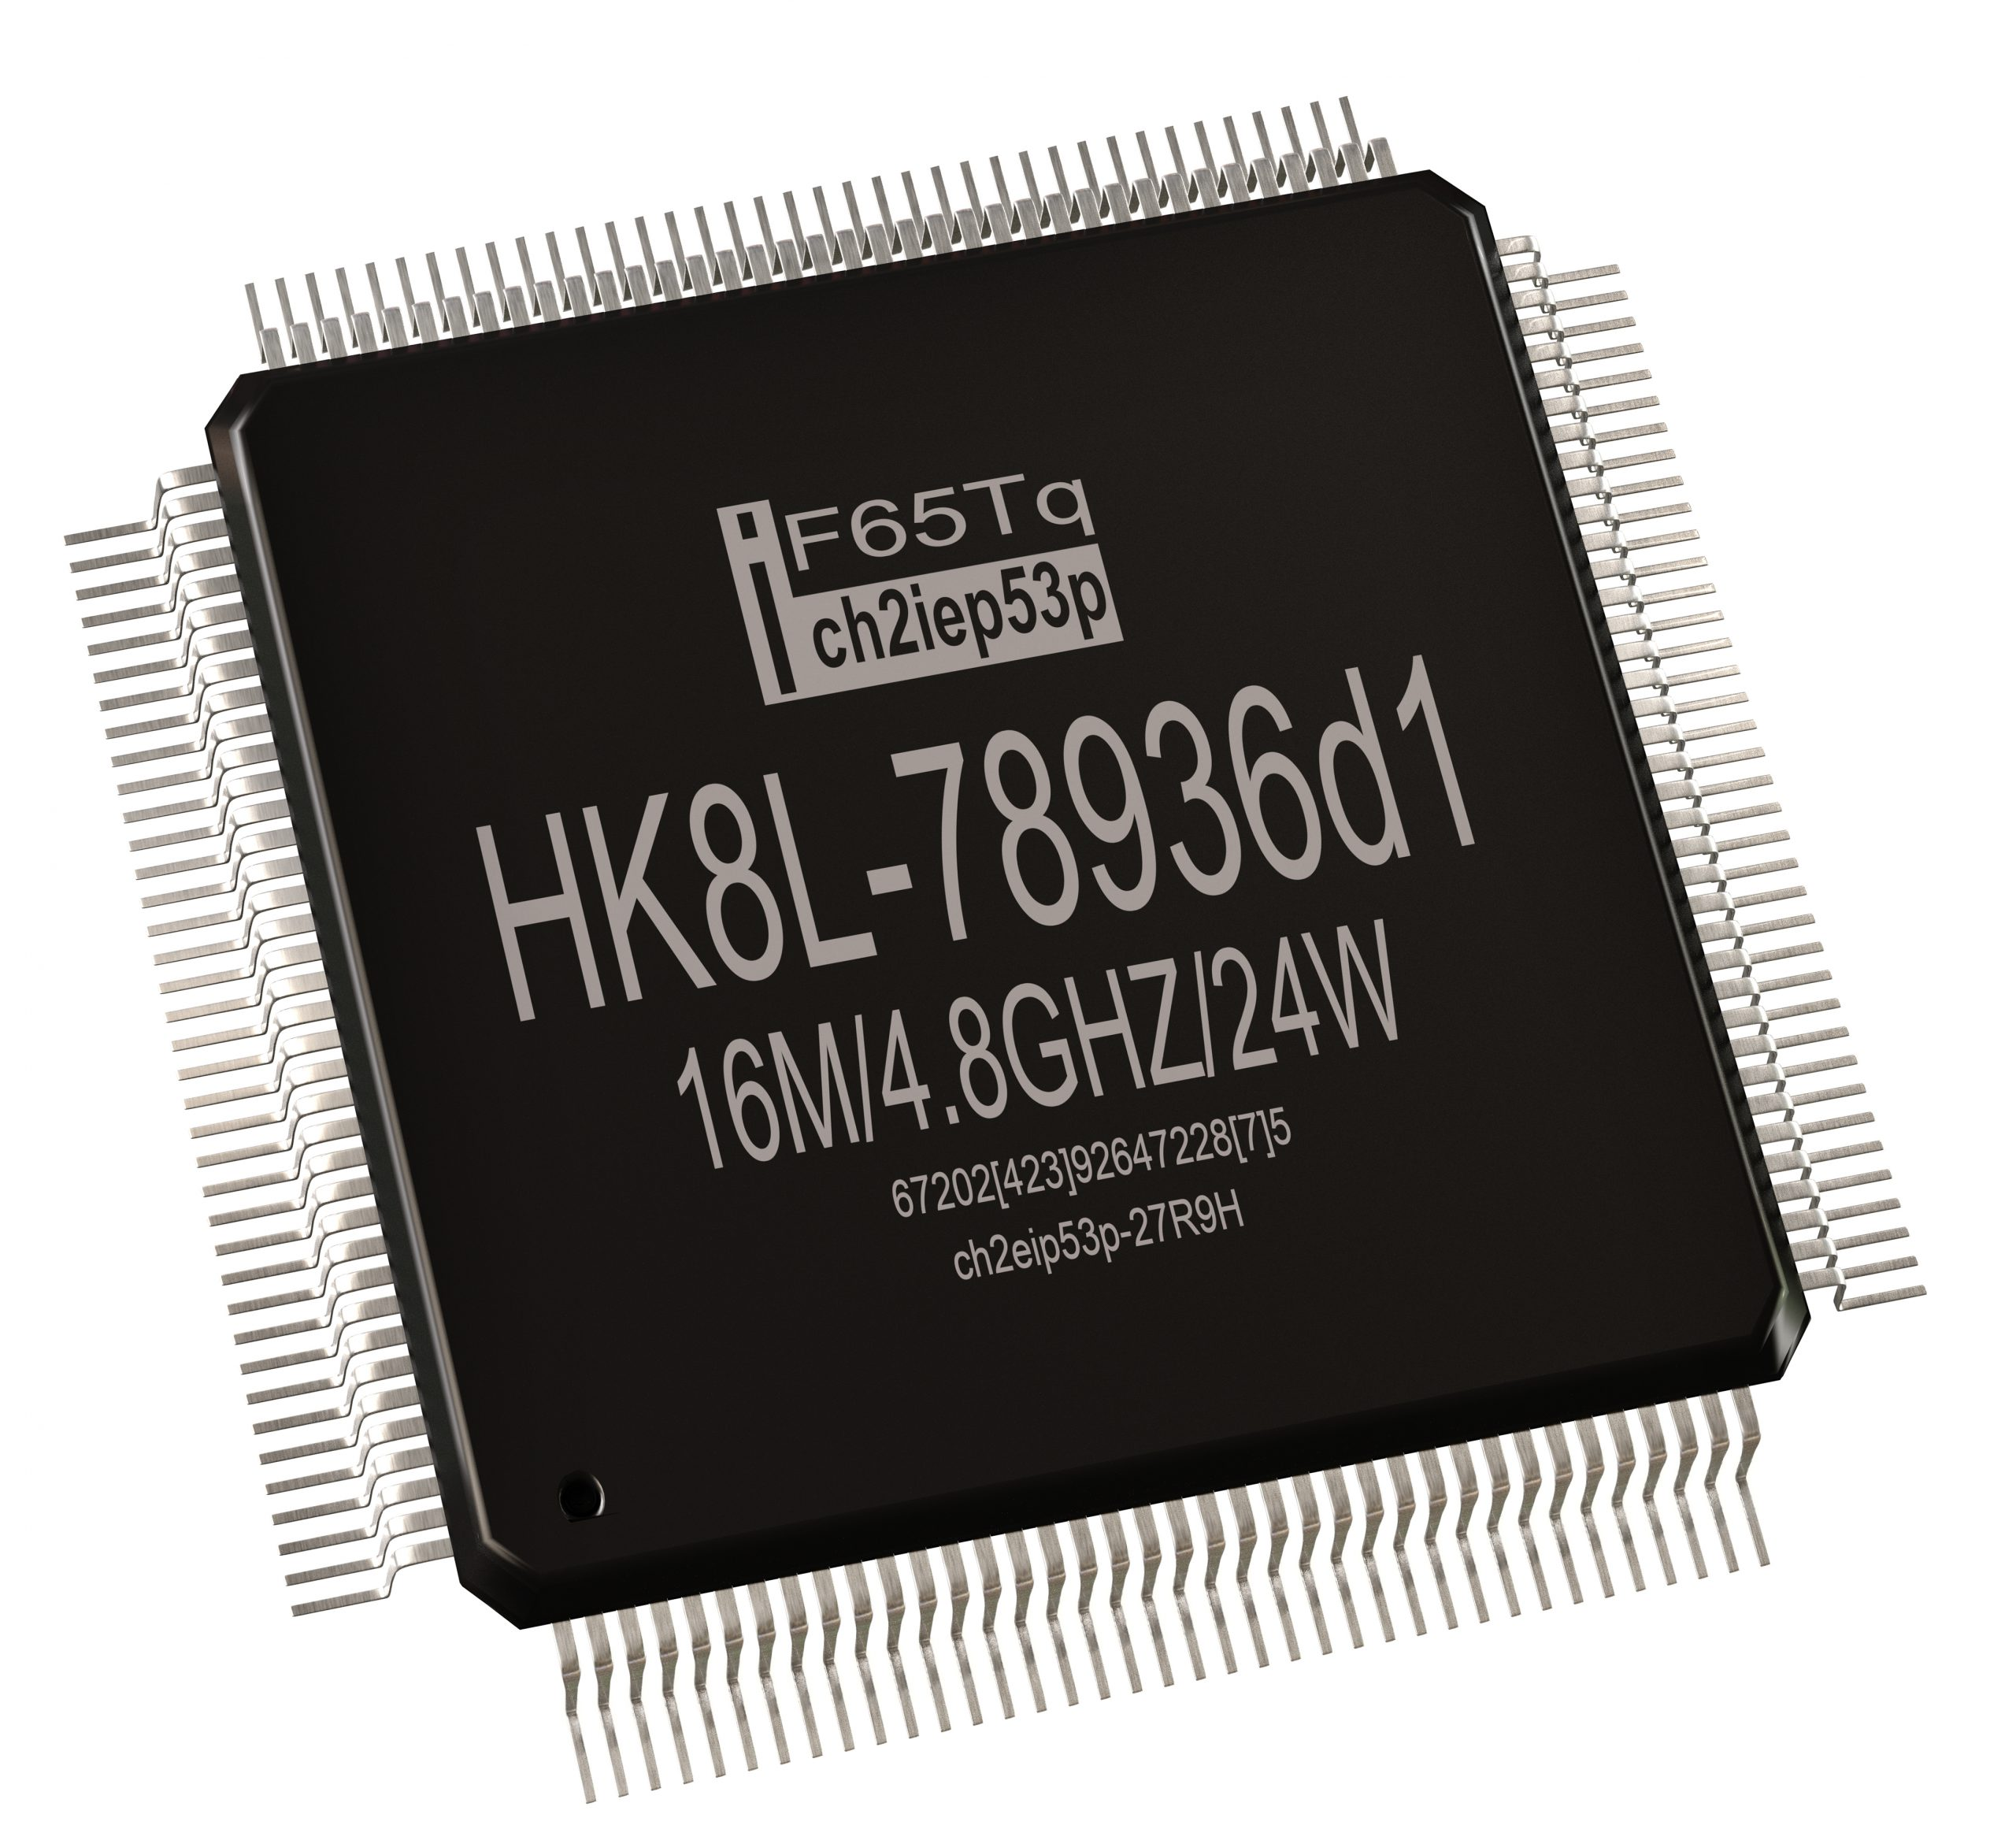 Surface Mounted Component - Quad Flat Pack IC